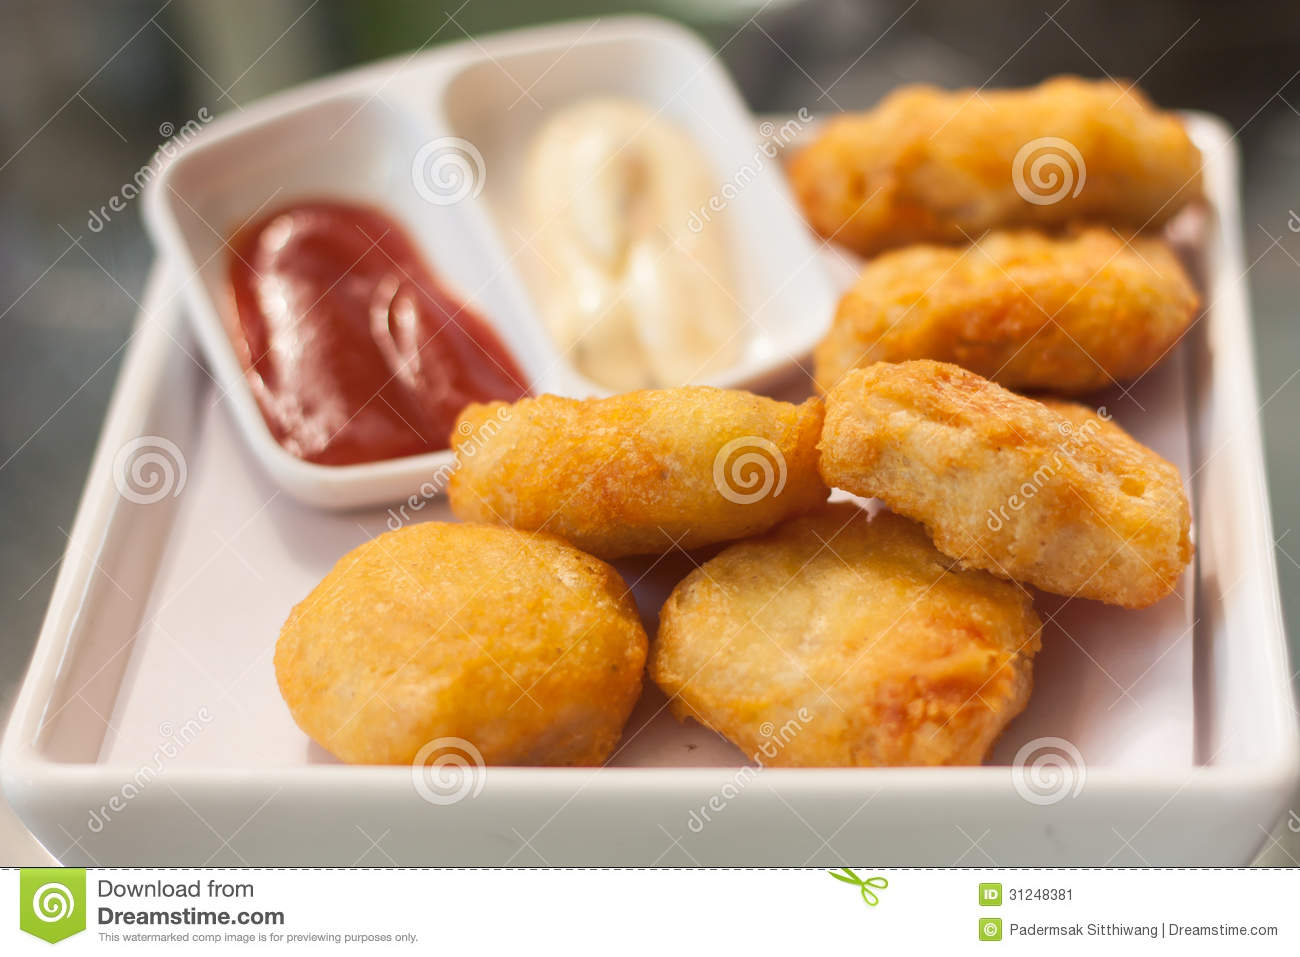 Crispy Fried Chicken nuggets in white plate with sauce.